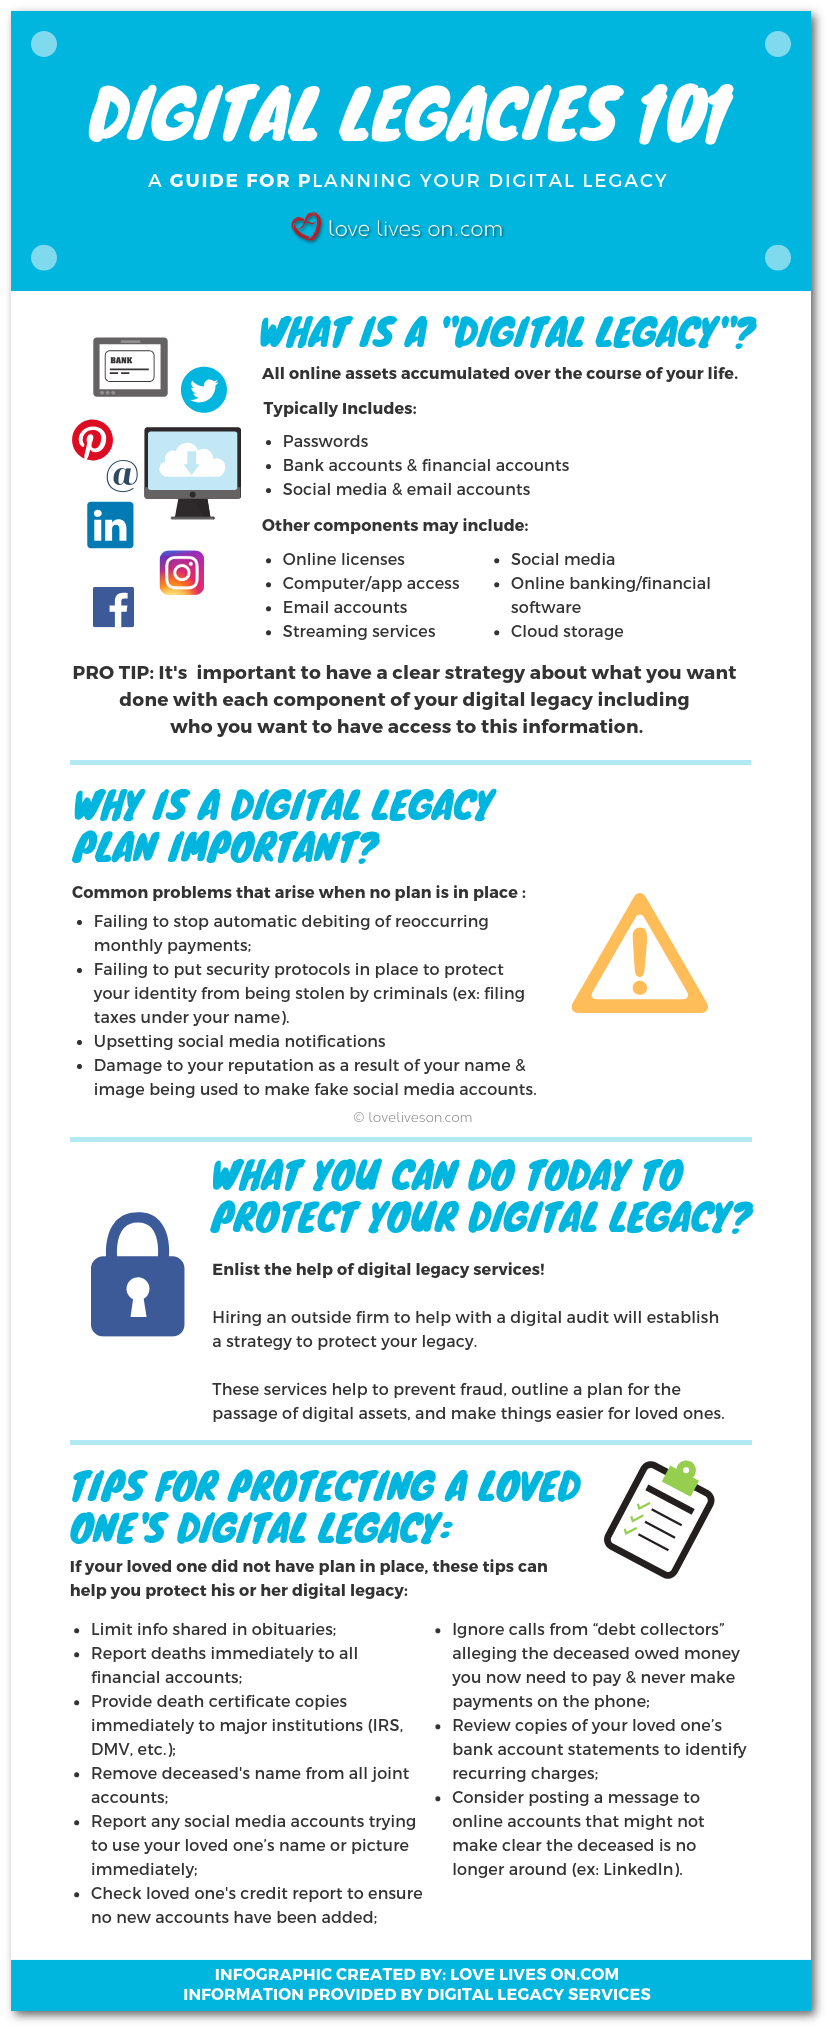 Digital Legacies Infographic